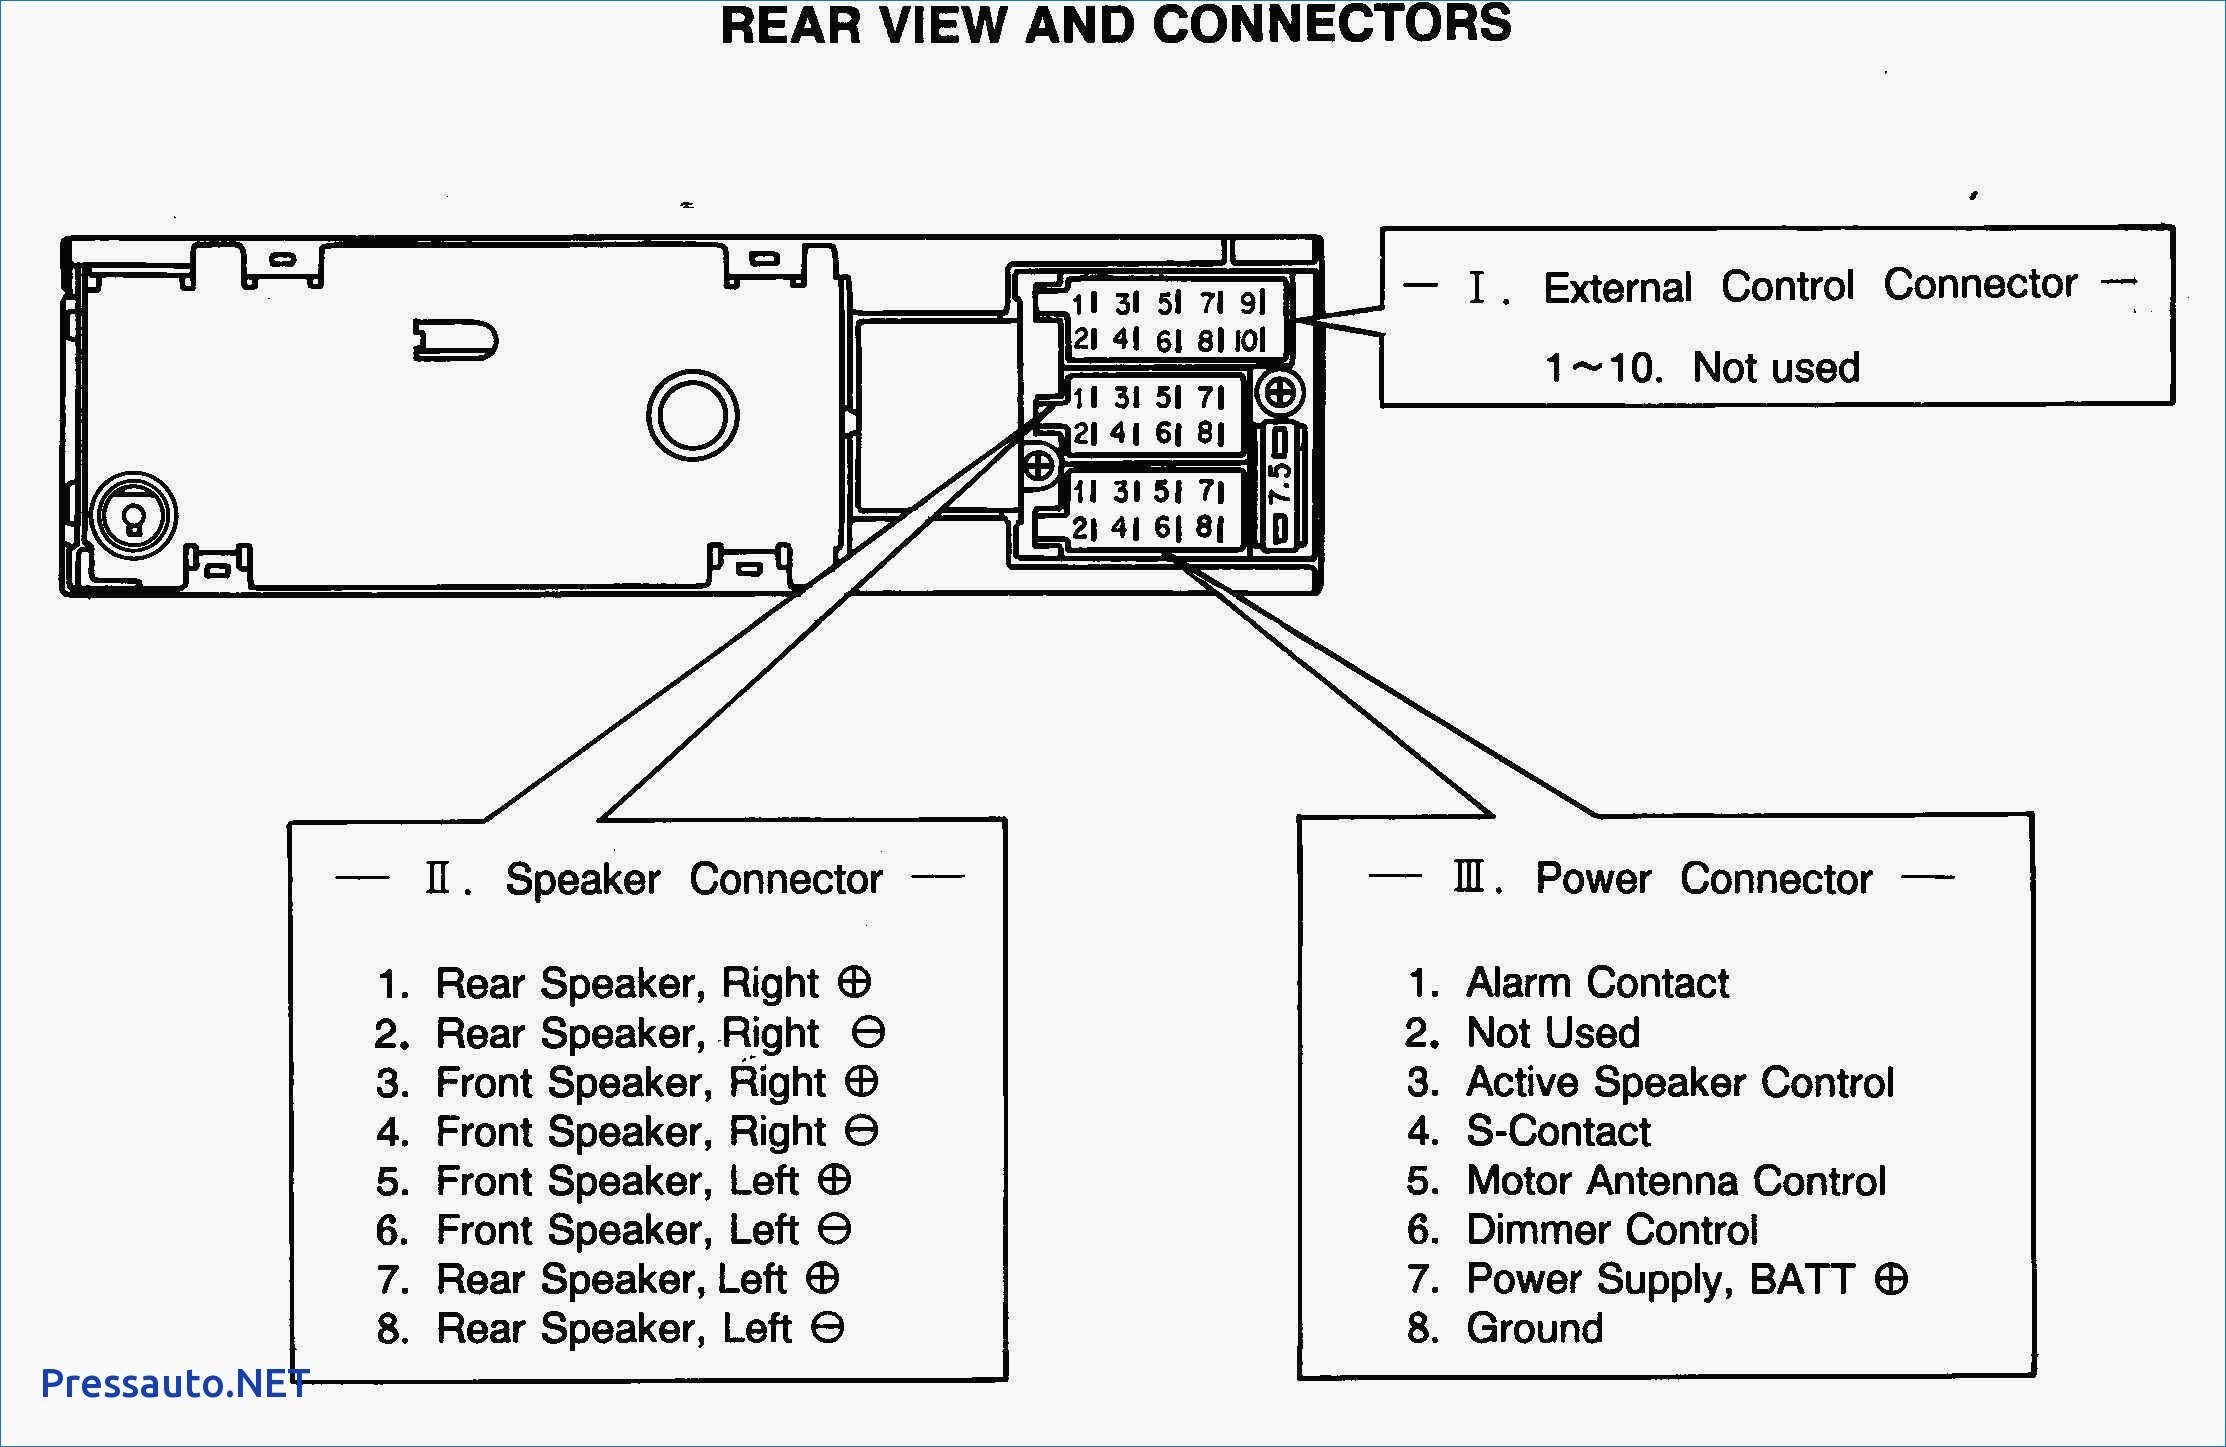 Car Stereo Wiring Harness Diagram Speaker Wire Diagram originalstylophone Of Car Stereo Wiring Harness Diagram